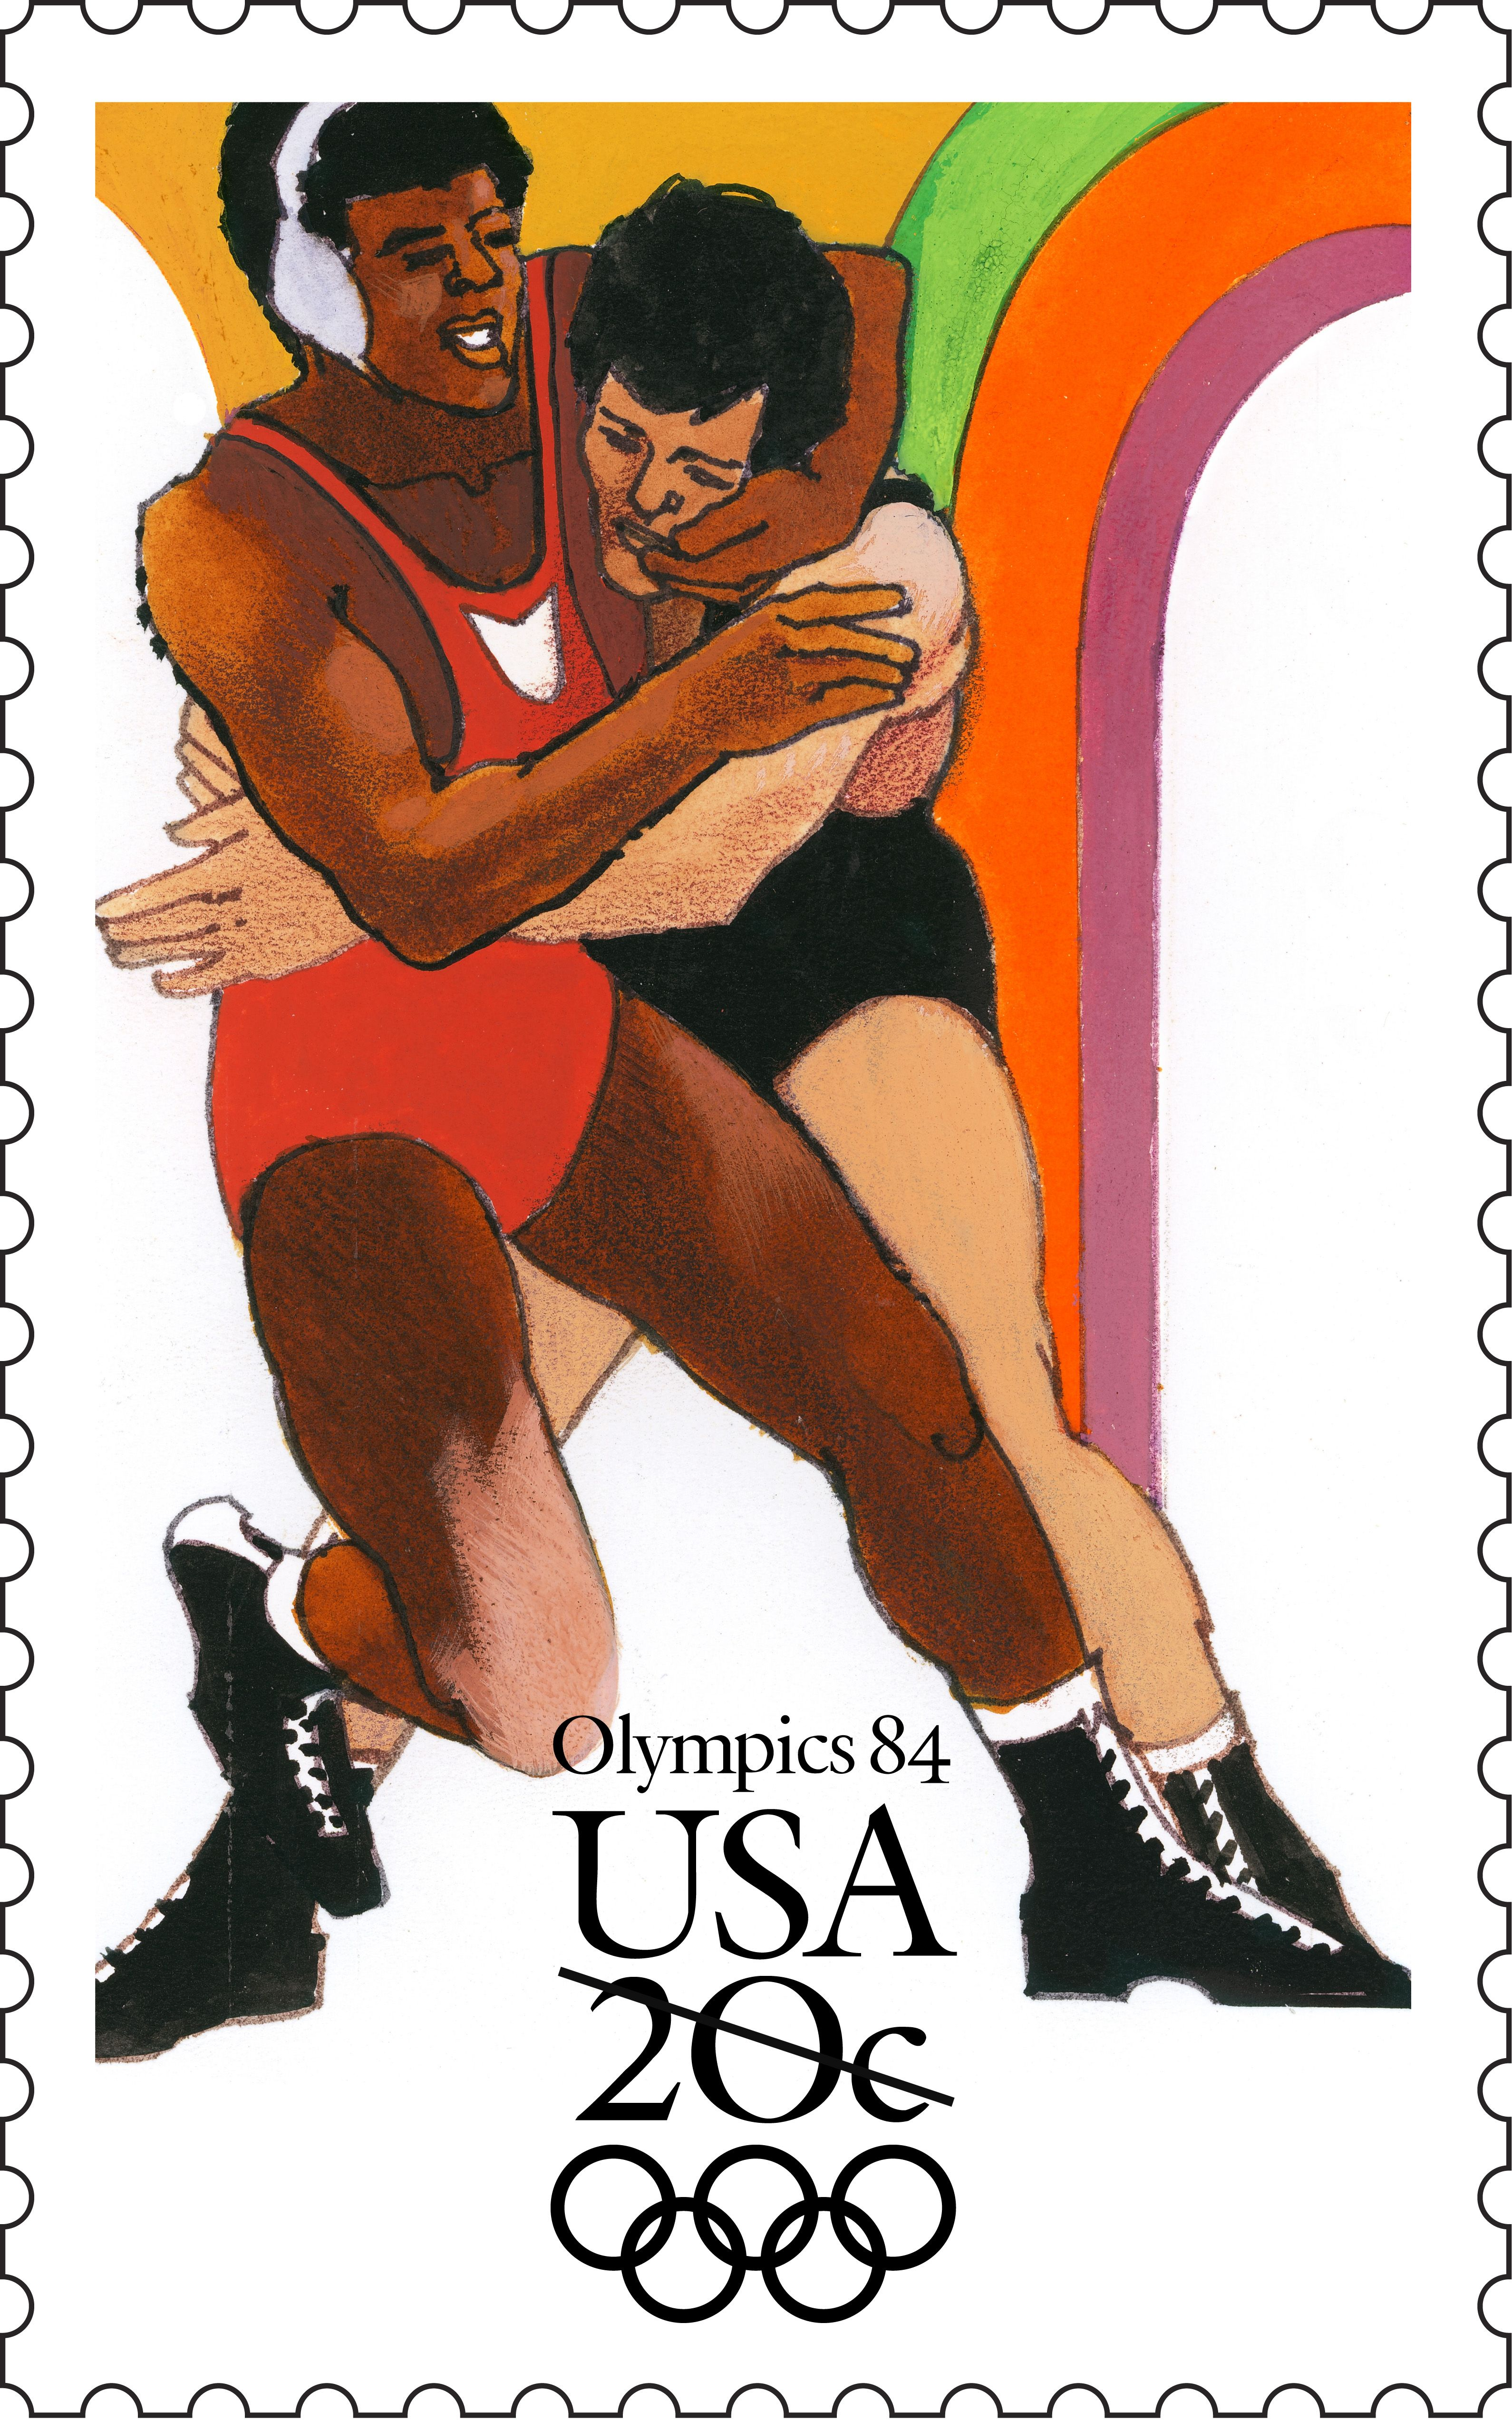 The Wrestling Stamp Was Part Of A Set Of Four Stamps Commemorating The 1984 Summer Olympics In Los Angeles Cali Postage Stamps Usa Usa Stamps Stamp Collecting